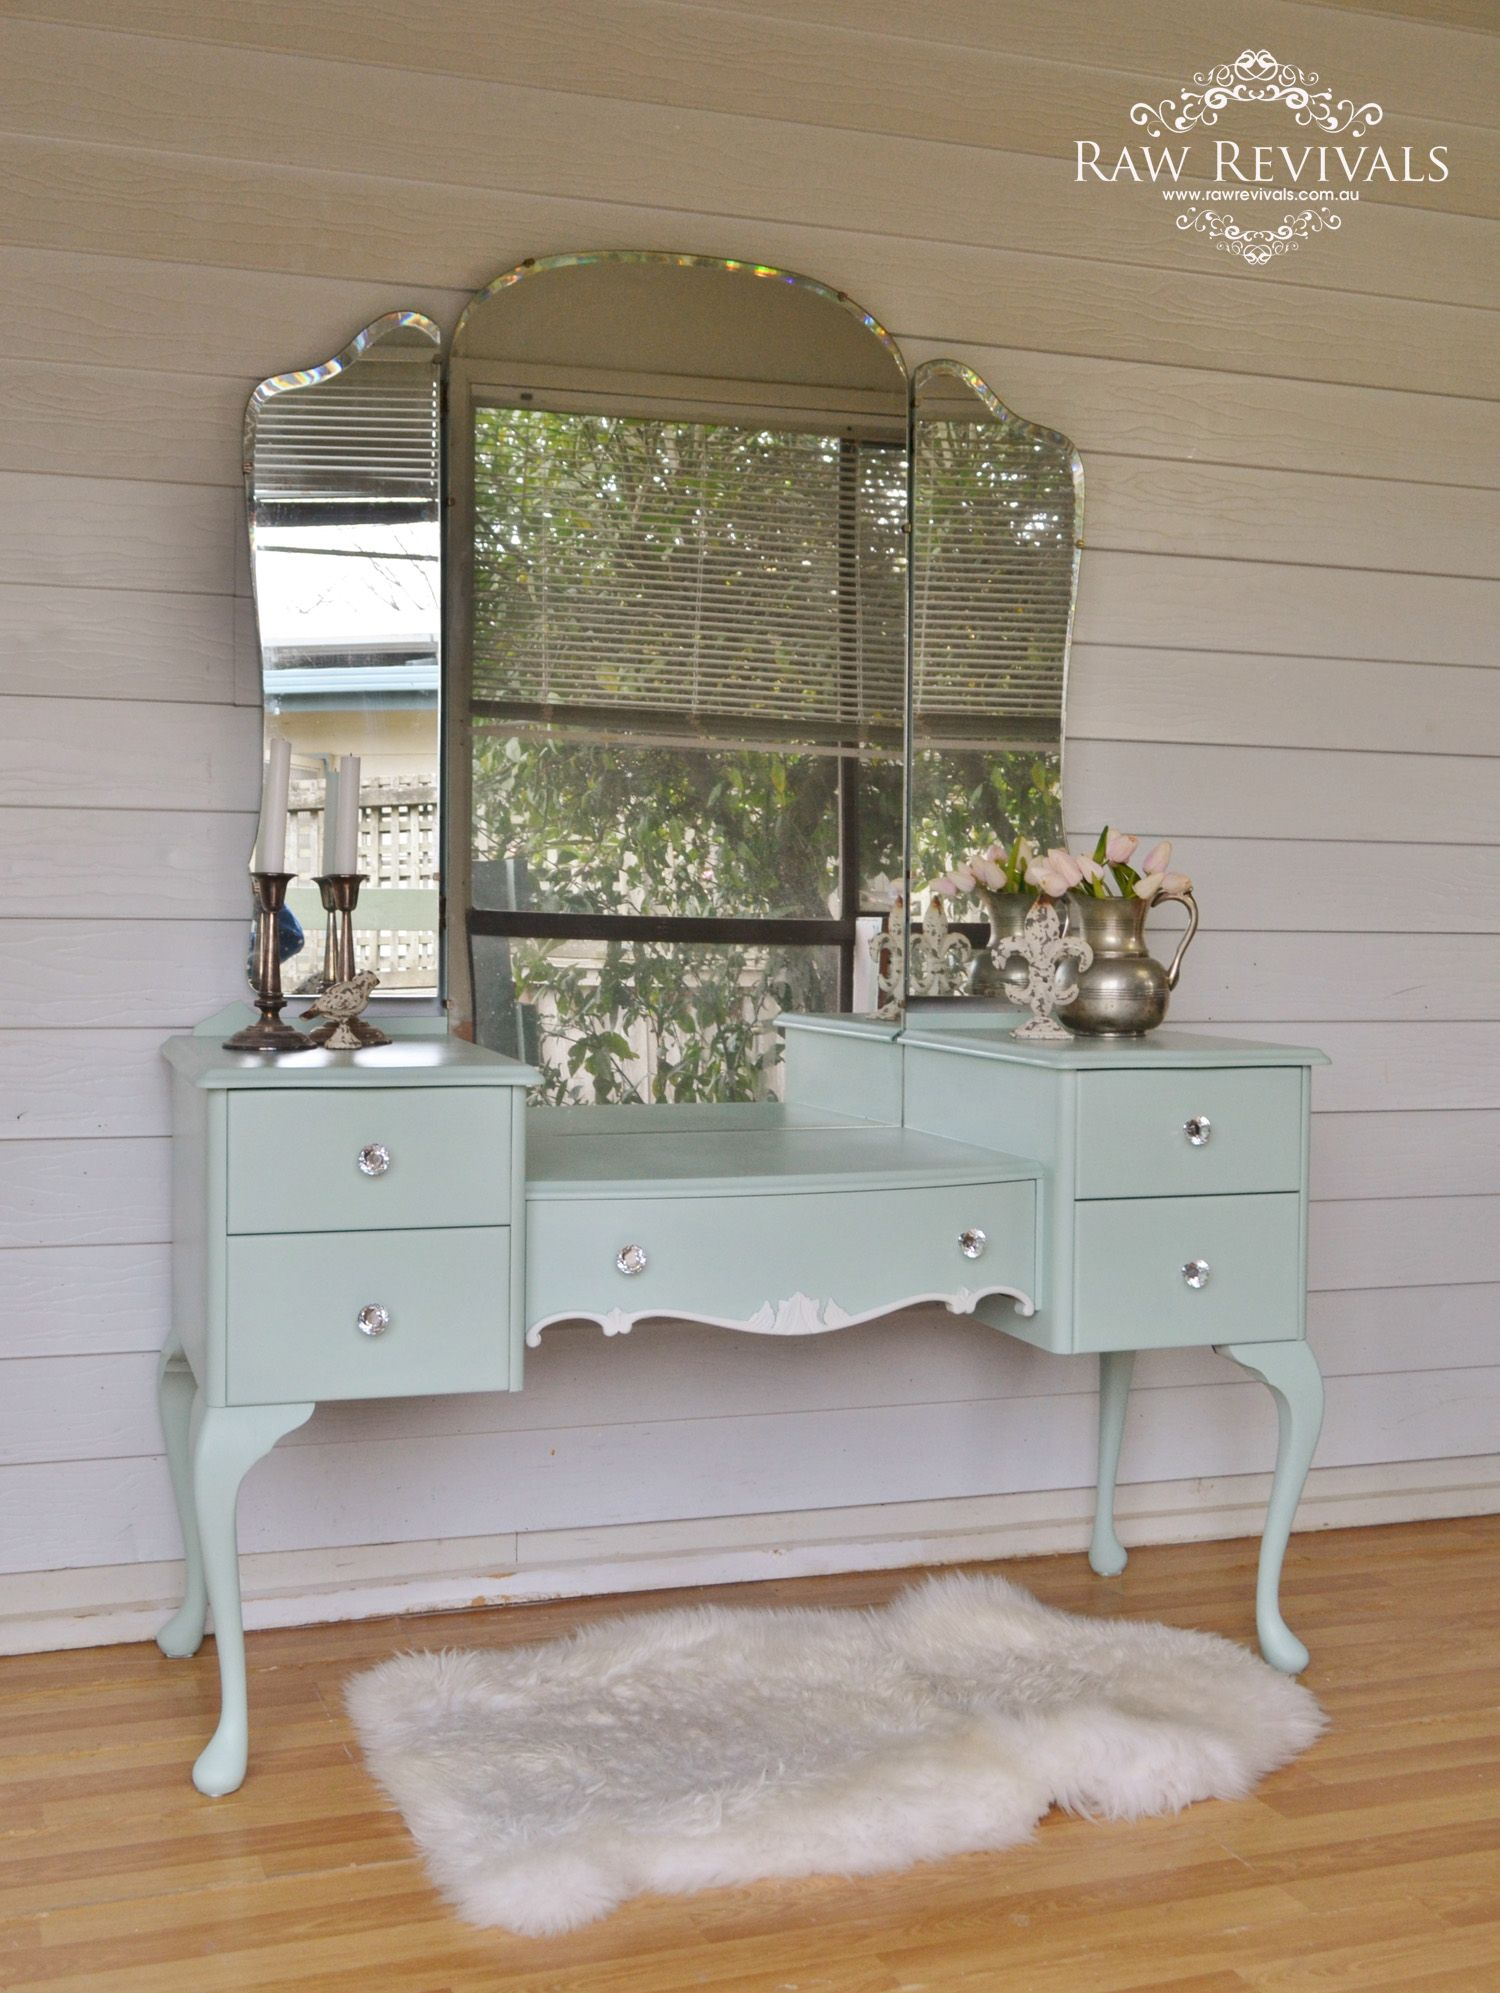 French Provincial Pastel Mint Queen Anne Dressing Table With White Accents And Butterfly Mirror Raw Revivals Bedroom Vintage Furniture Home